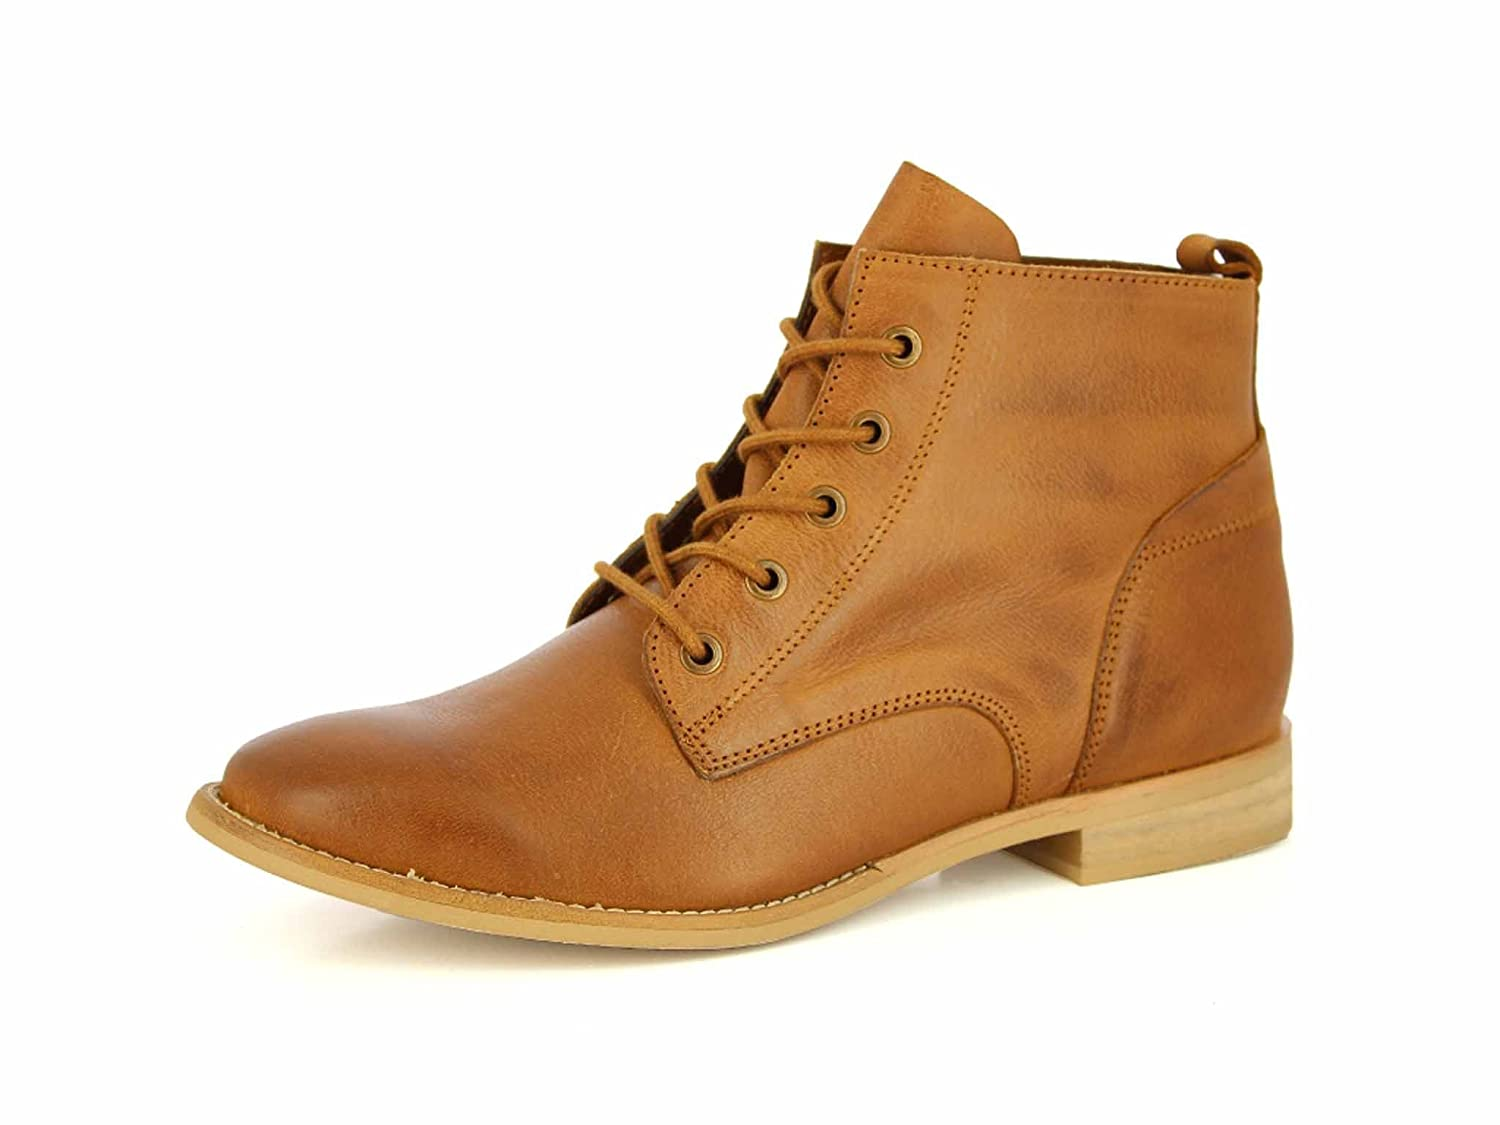 ALBERTO TORRESI Leather Ankle Boots For Women Lace Up Casual Durbey Shoes Combat Boots Booties B074275Y8W 9.5 B(M) US|Tan